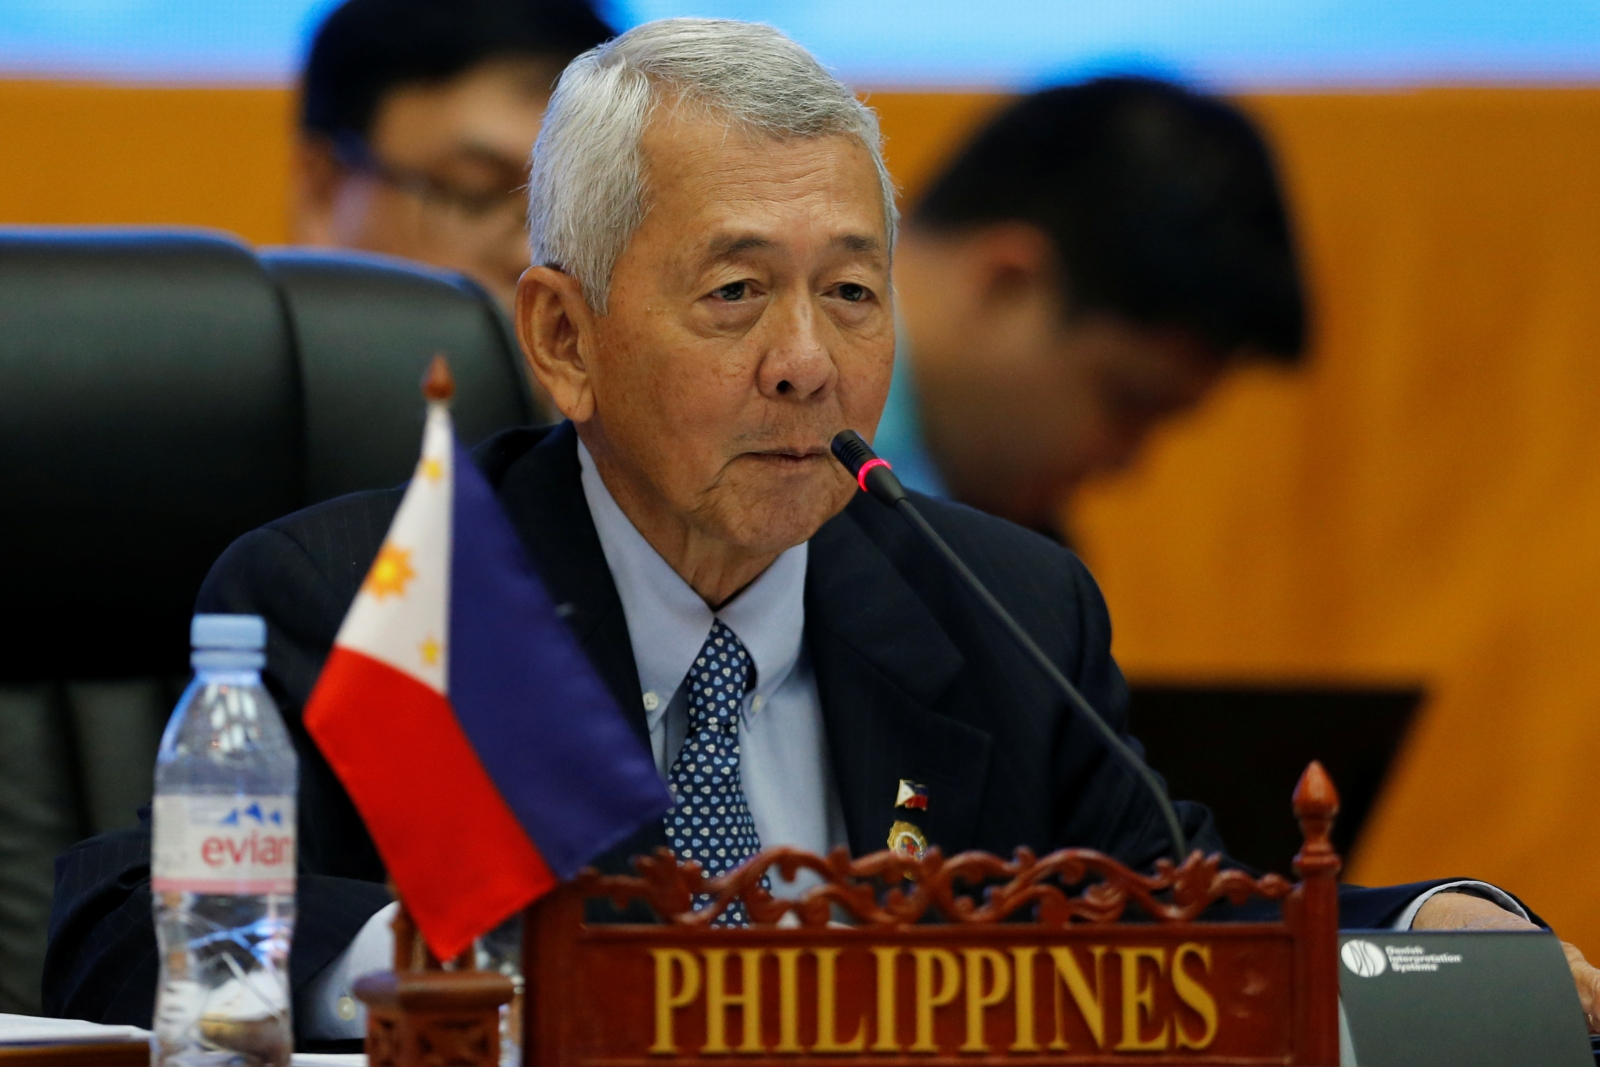 Philippine Foreign Secretary Perfecto Yasay